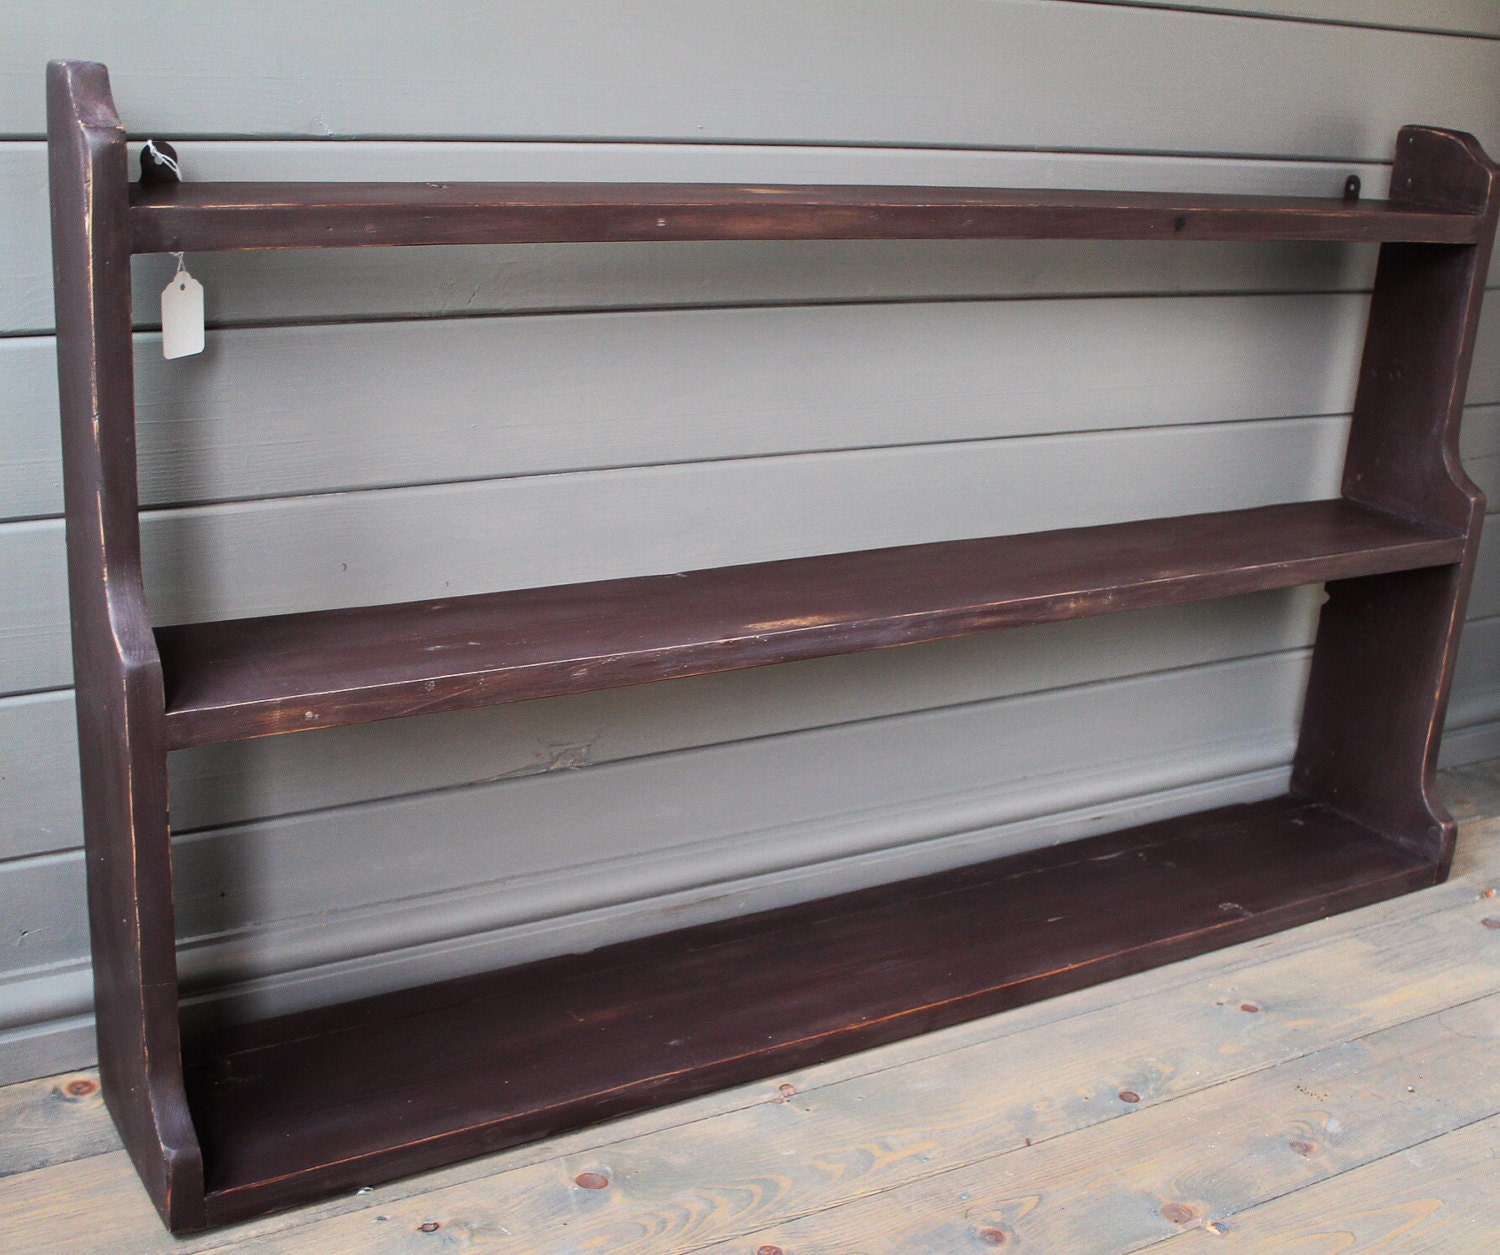 Antique Pine Painted Open Back Shelving Unit rustic shabby chic kitchen shelving